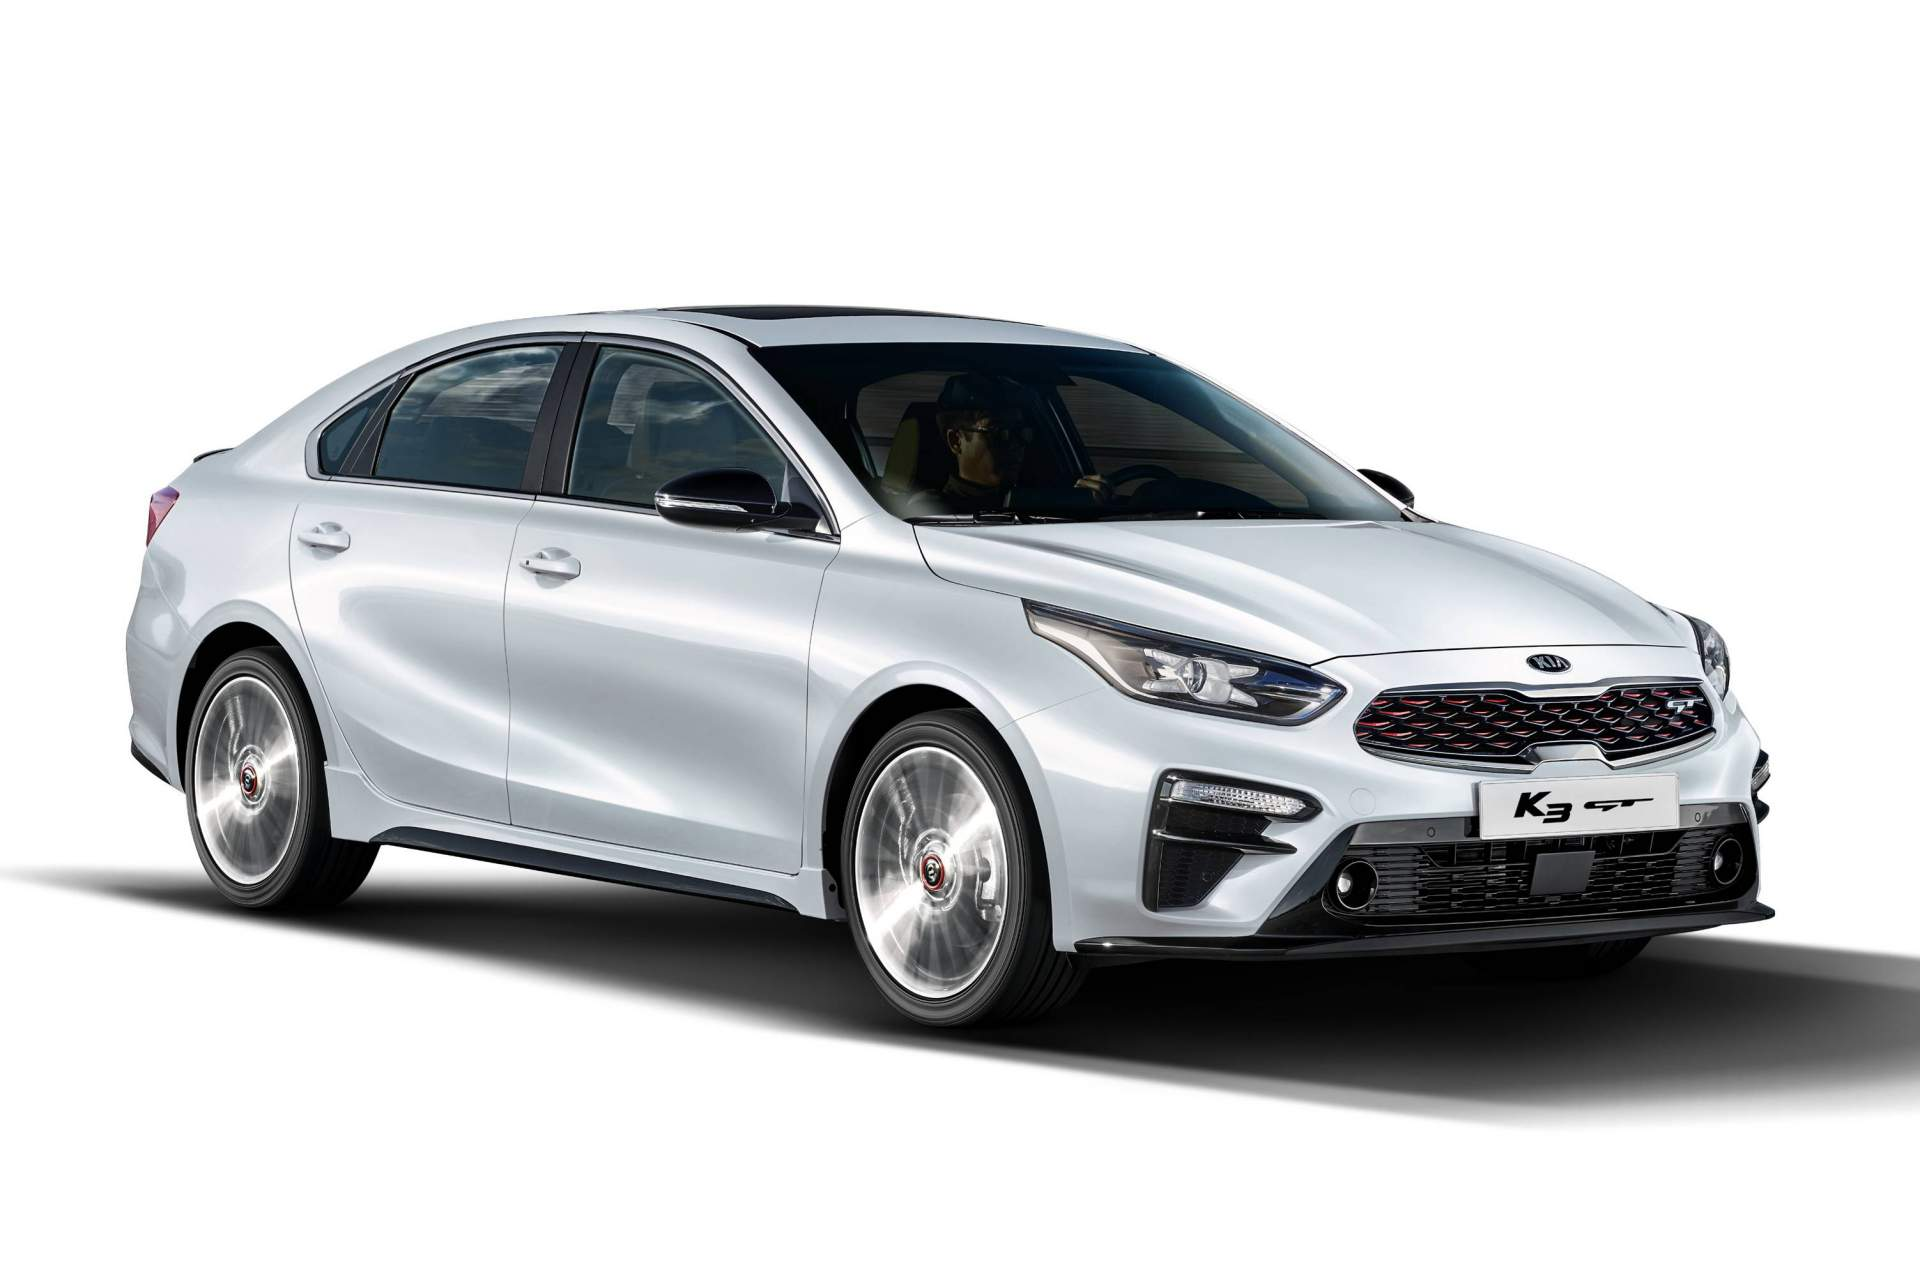 Kia Forte For Sale >> 2020 Kia Forte GT Challenges the Volkswagen Jetta GLI - autoevolution